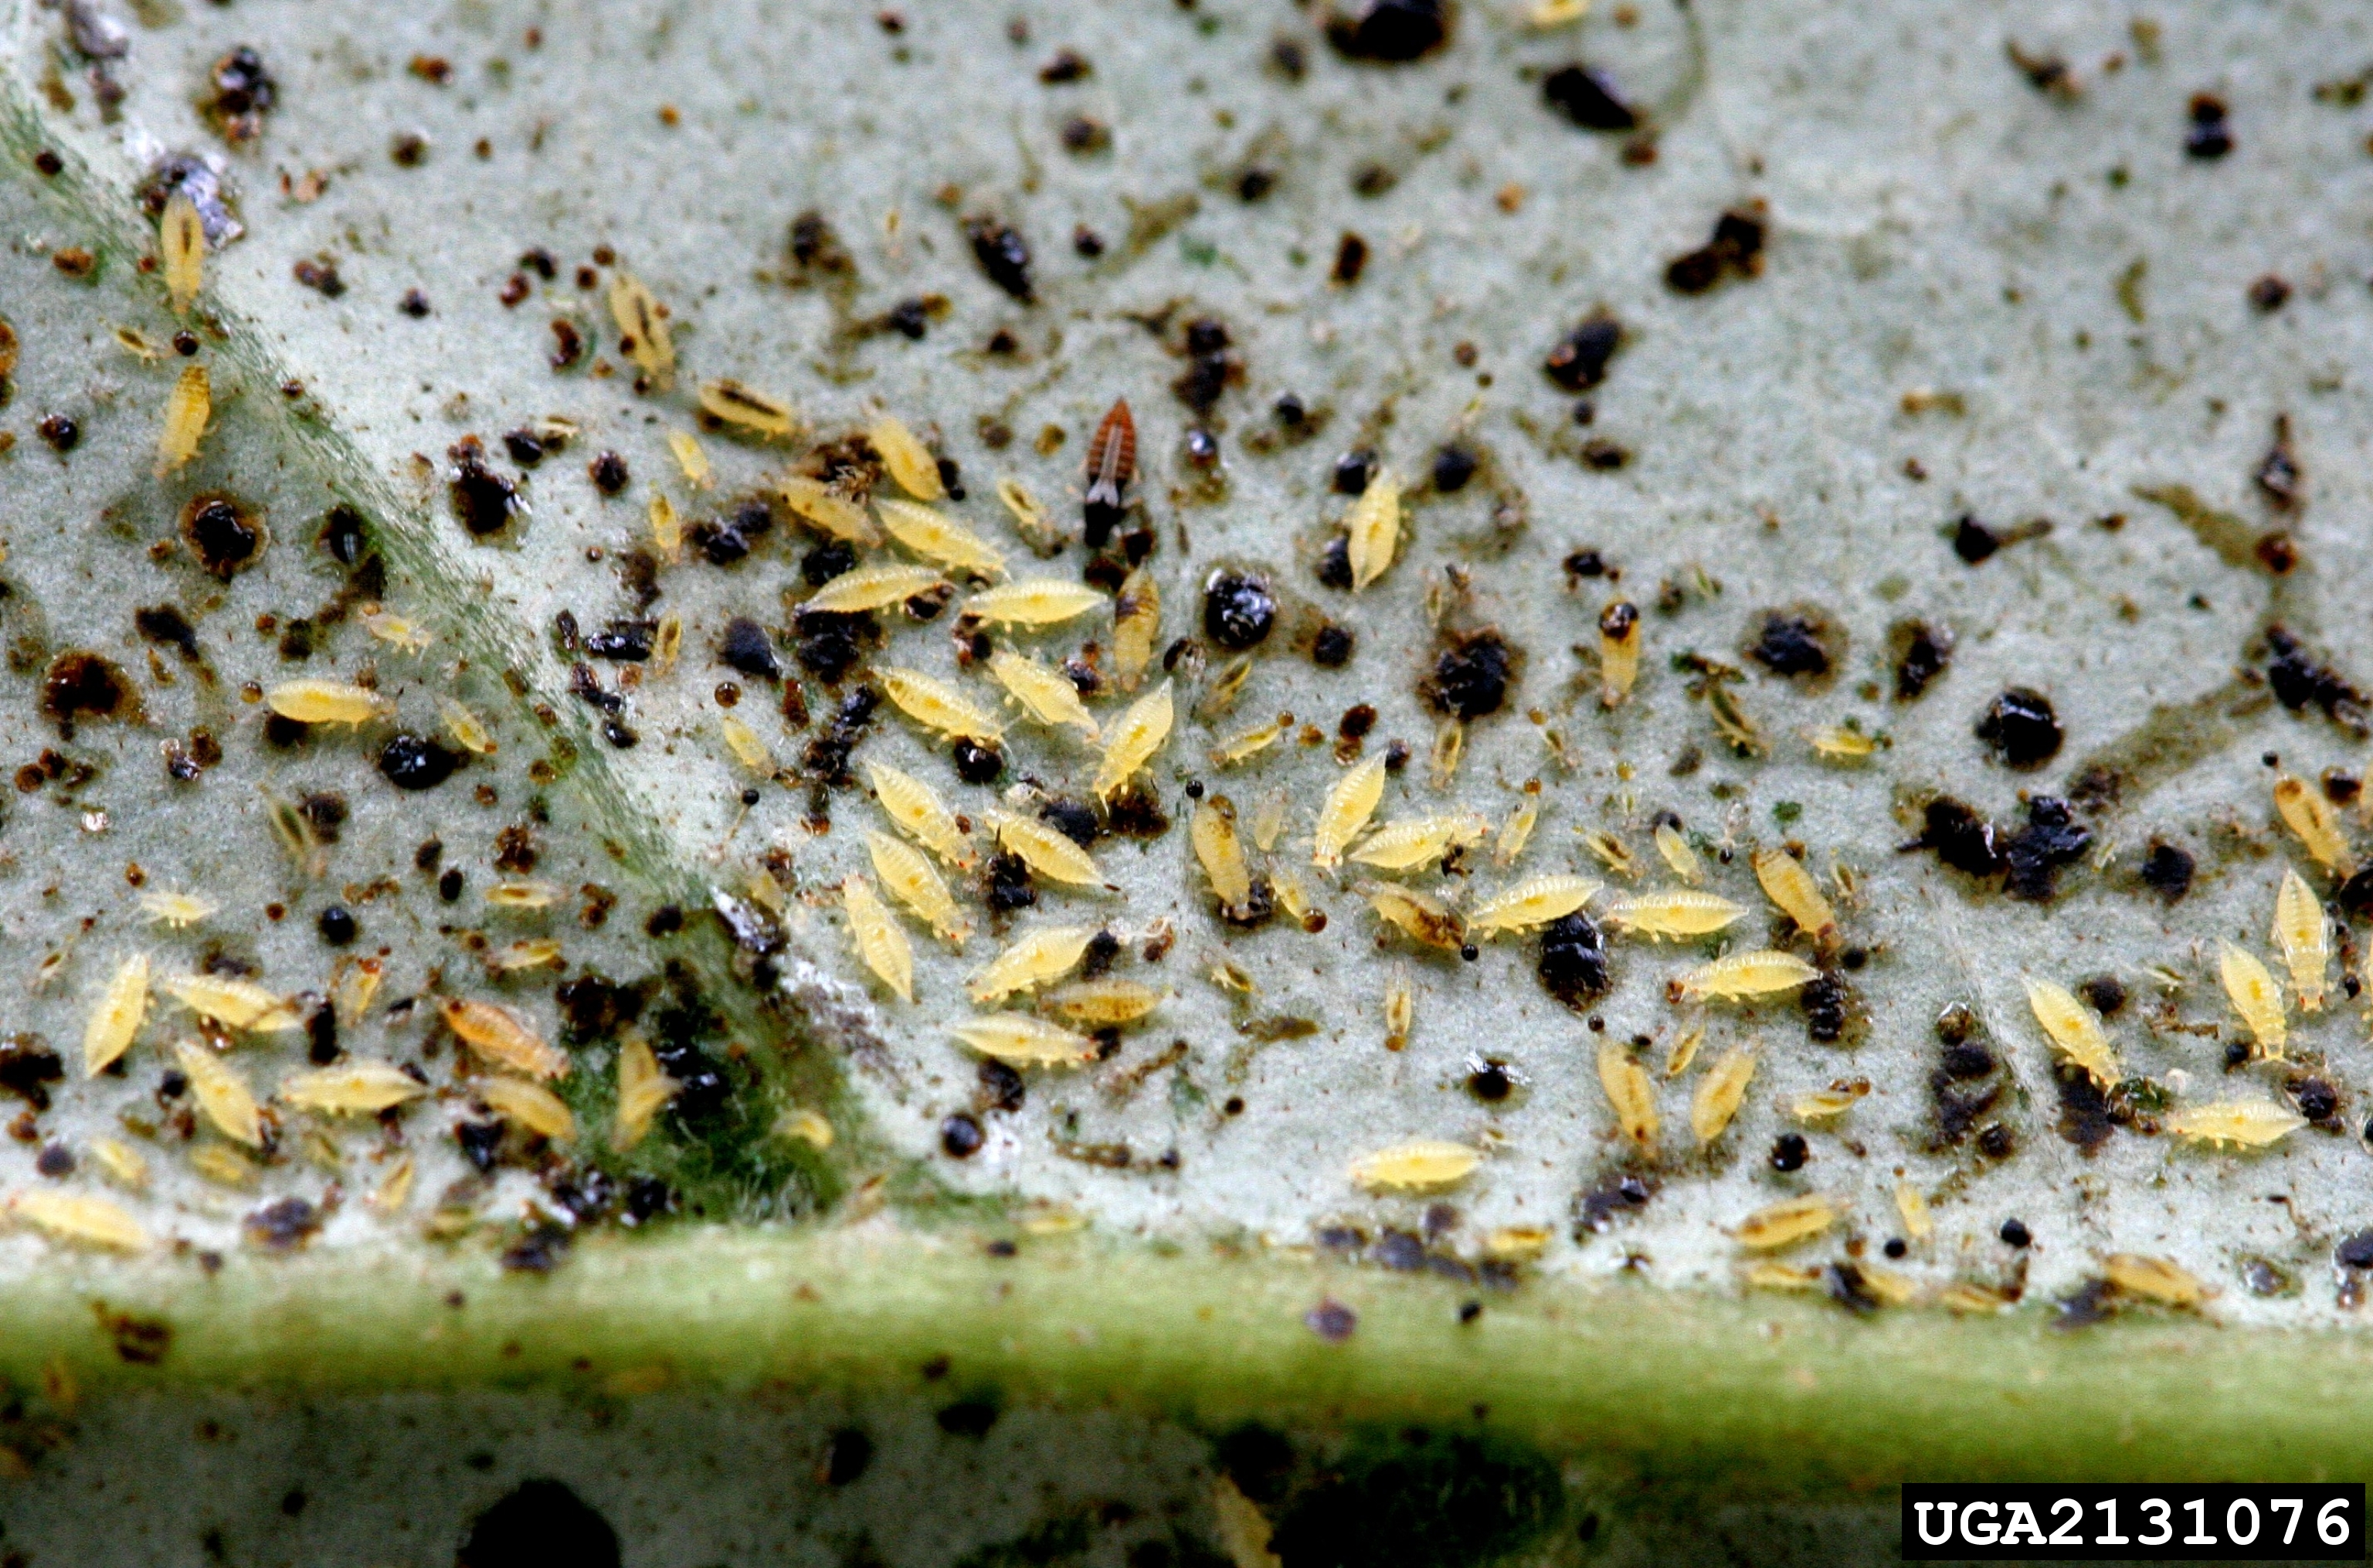 Adult and larva greenhouse thrips